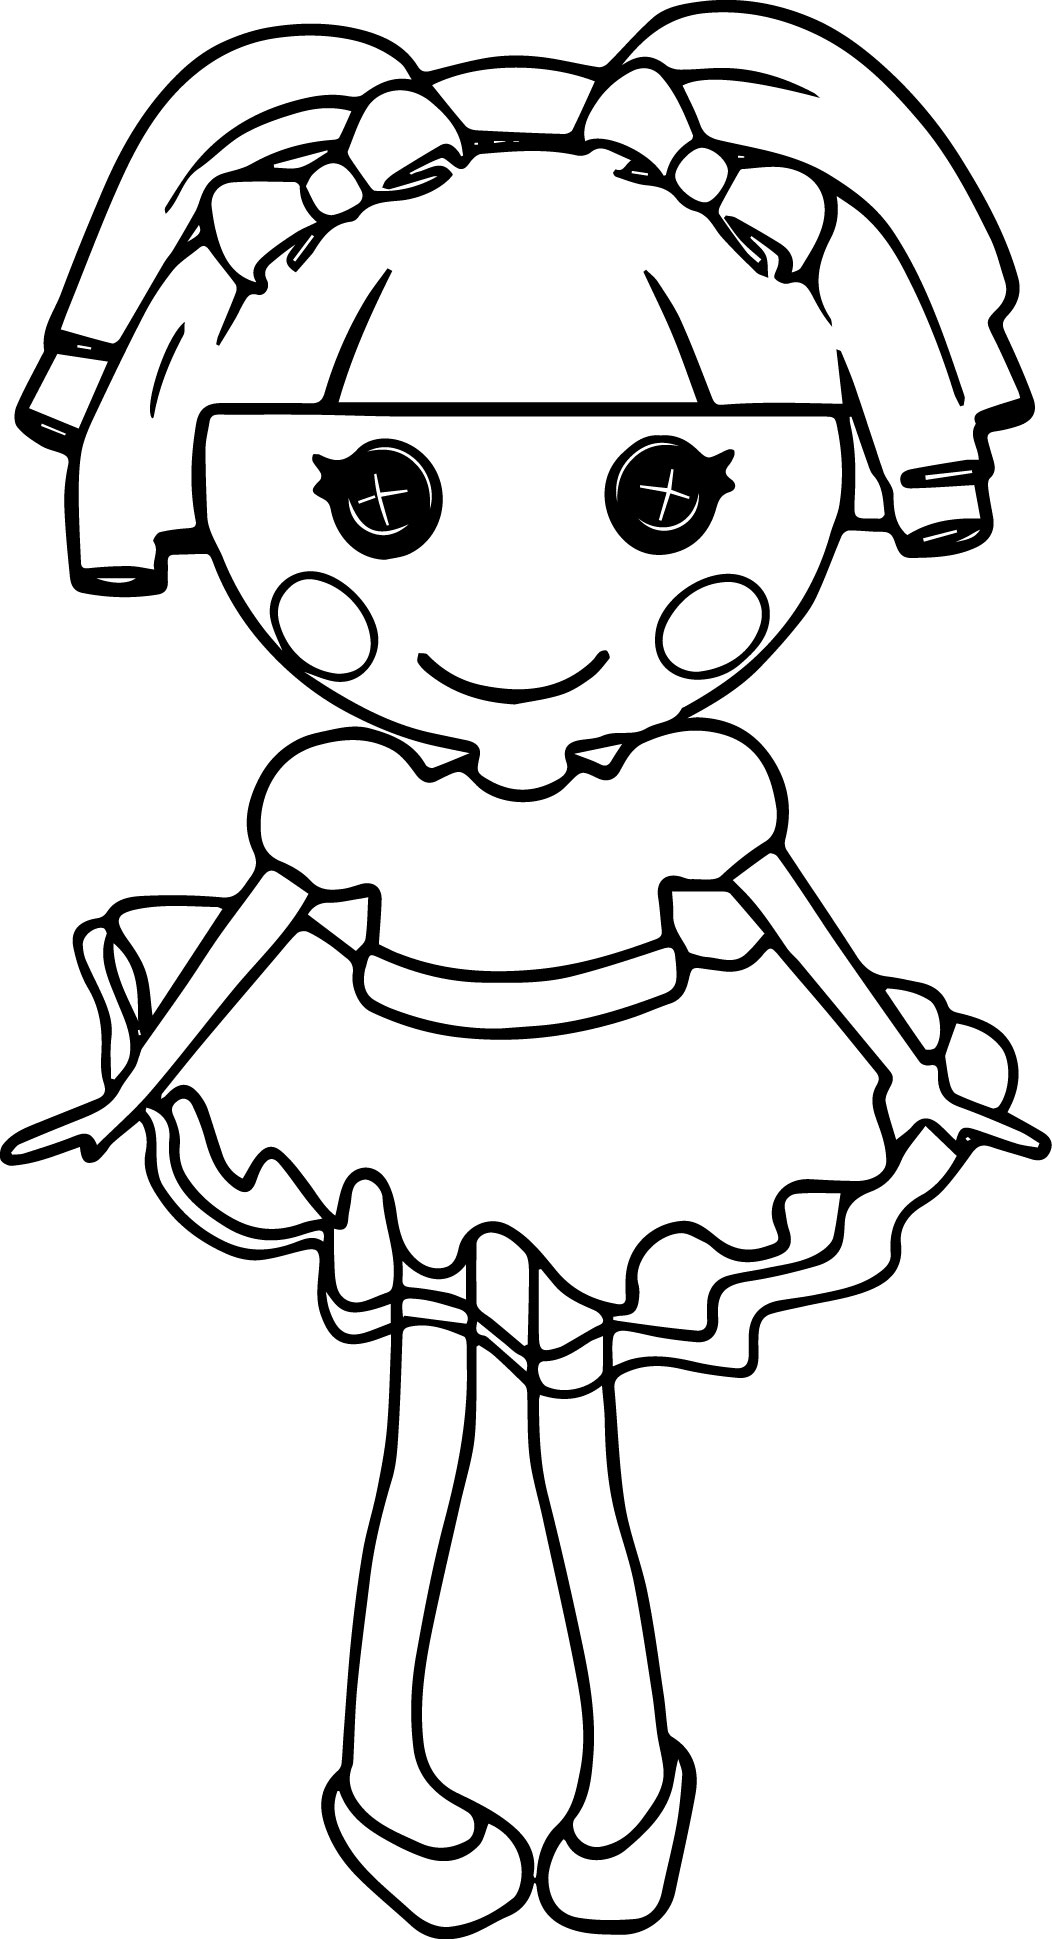 Lalaloopsy Cartoon Coloring Pages